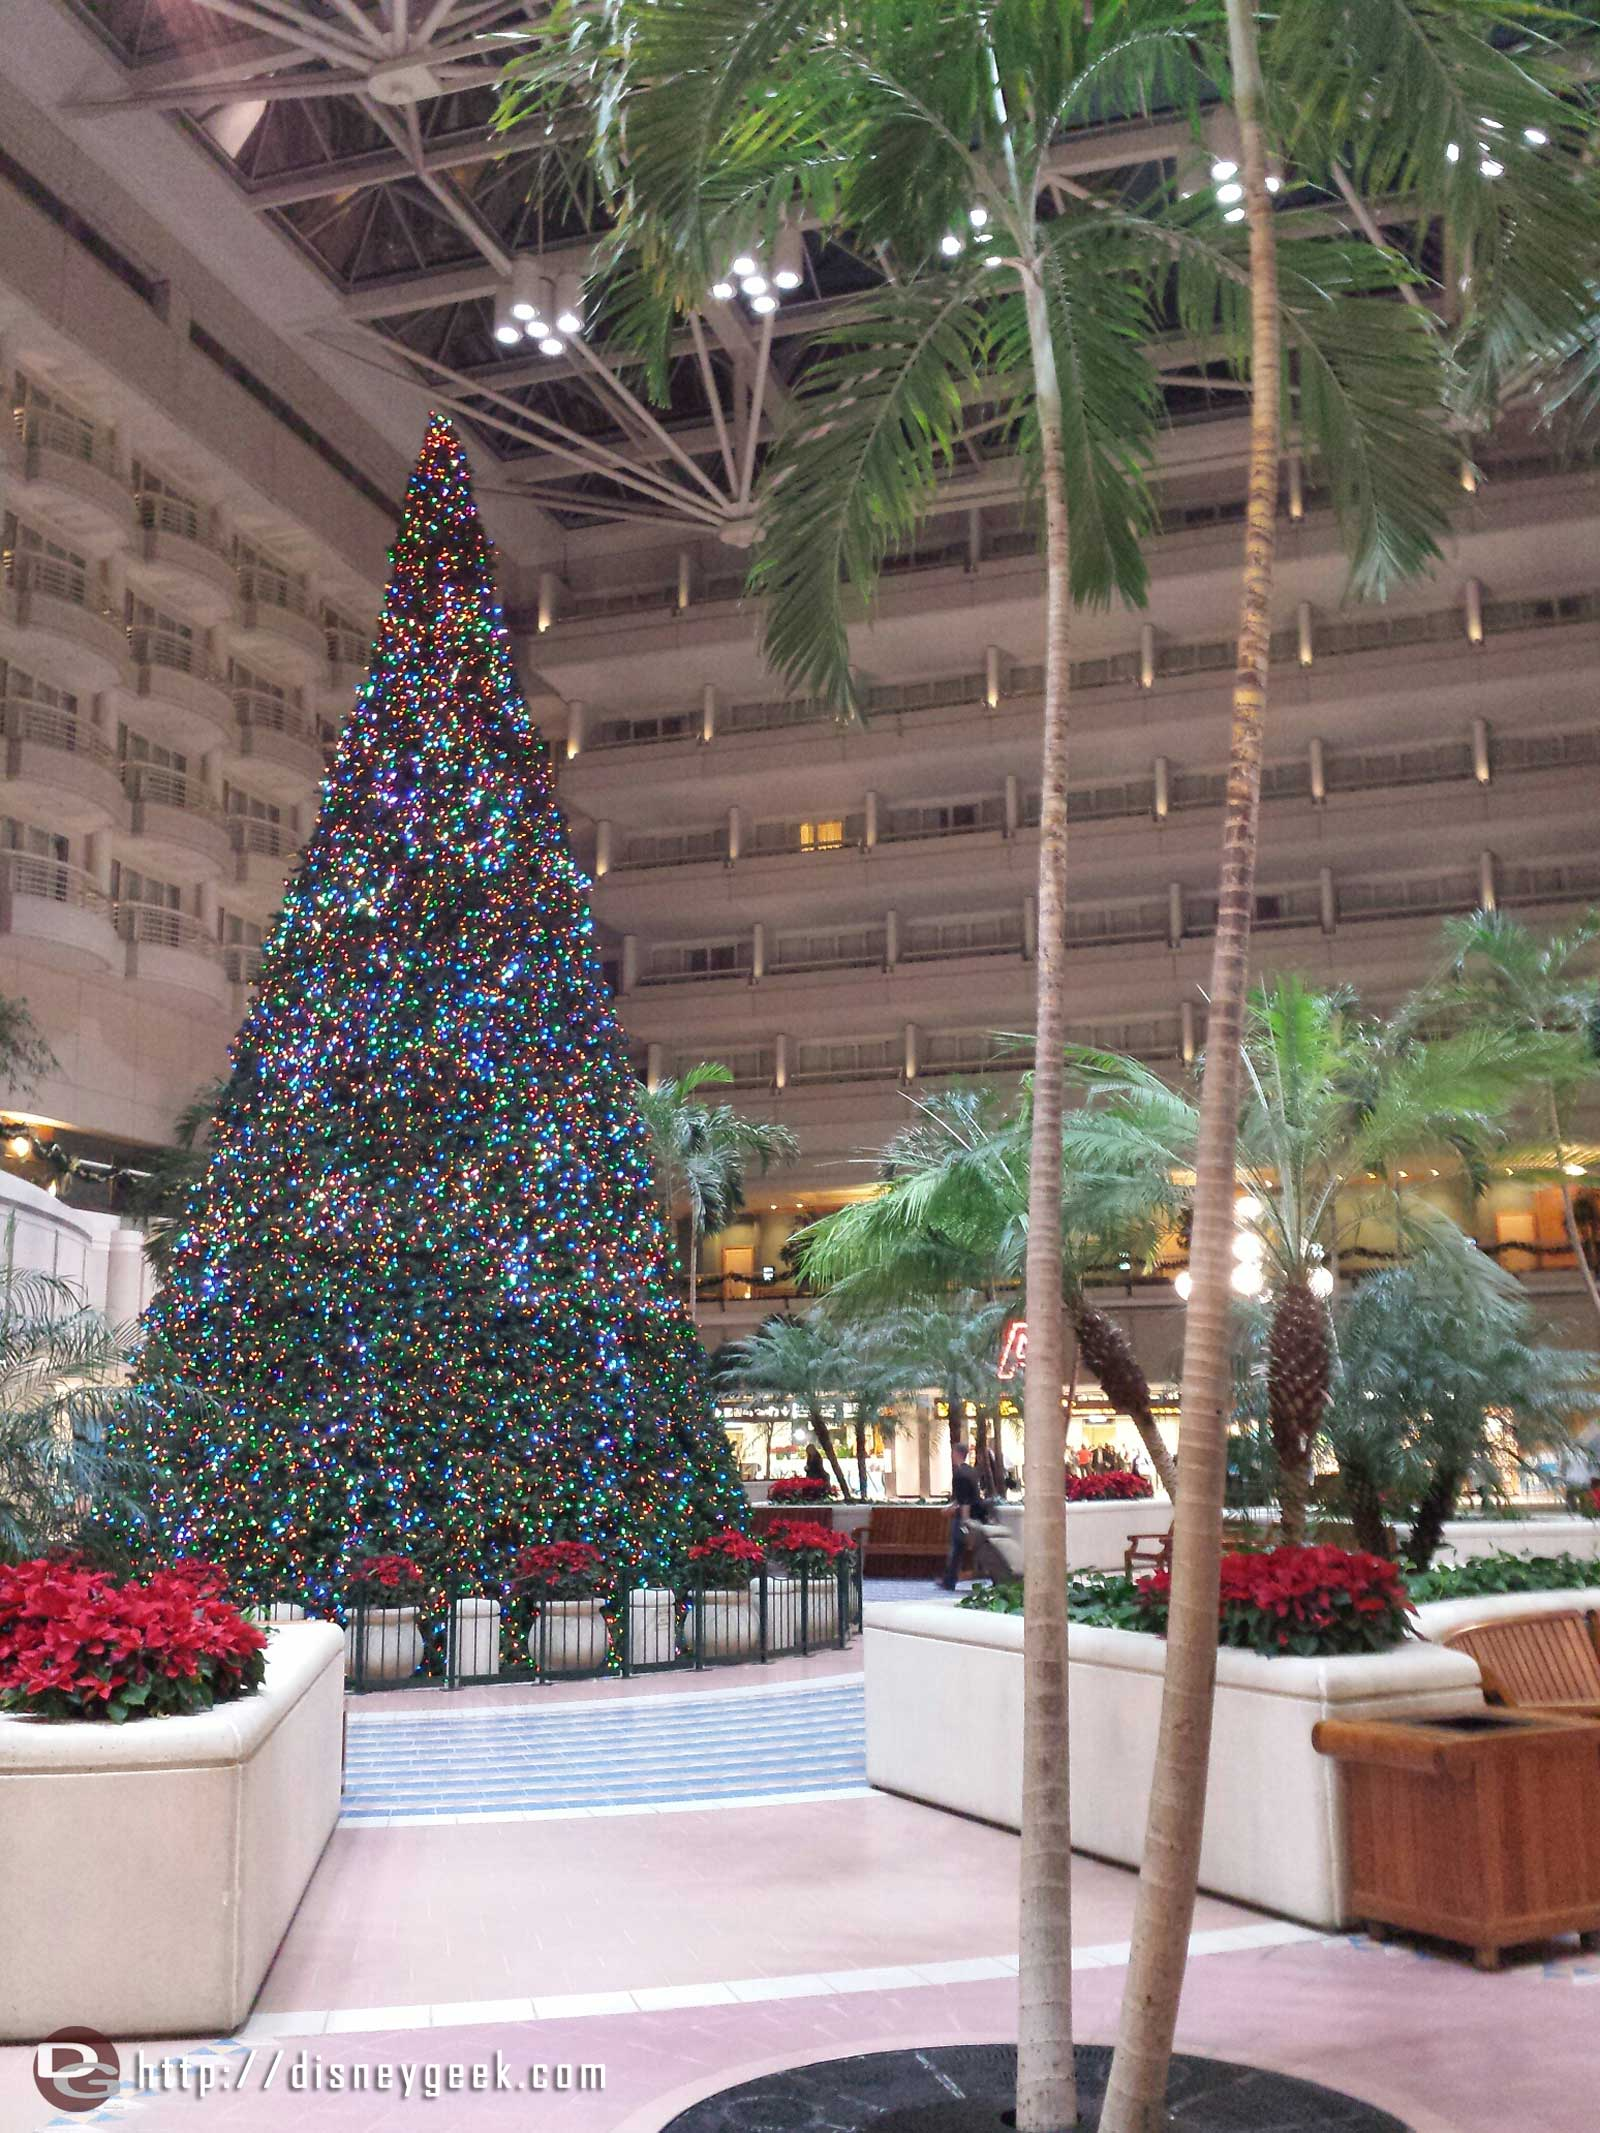 The large Christmas tree at the Orlando International Airport